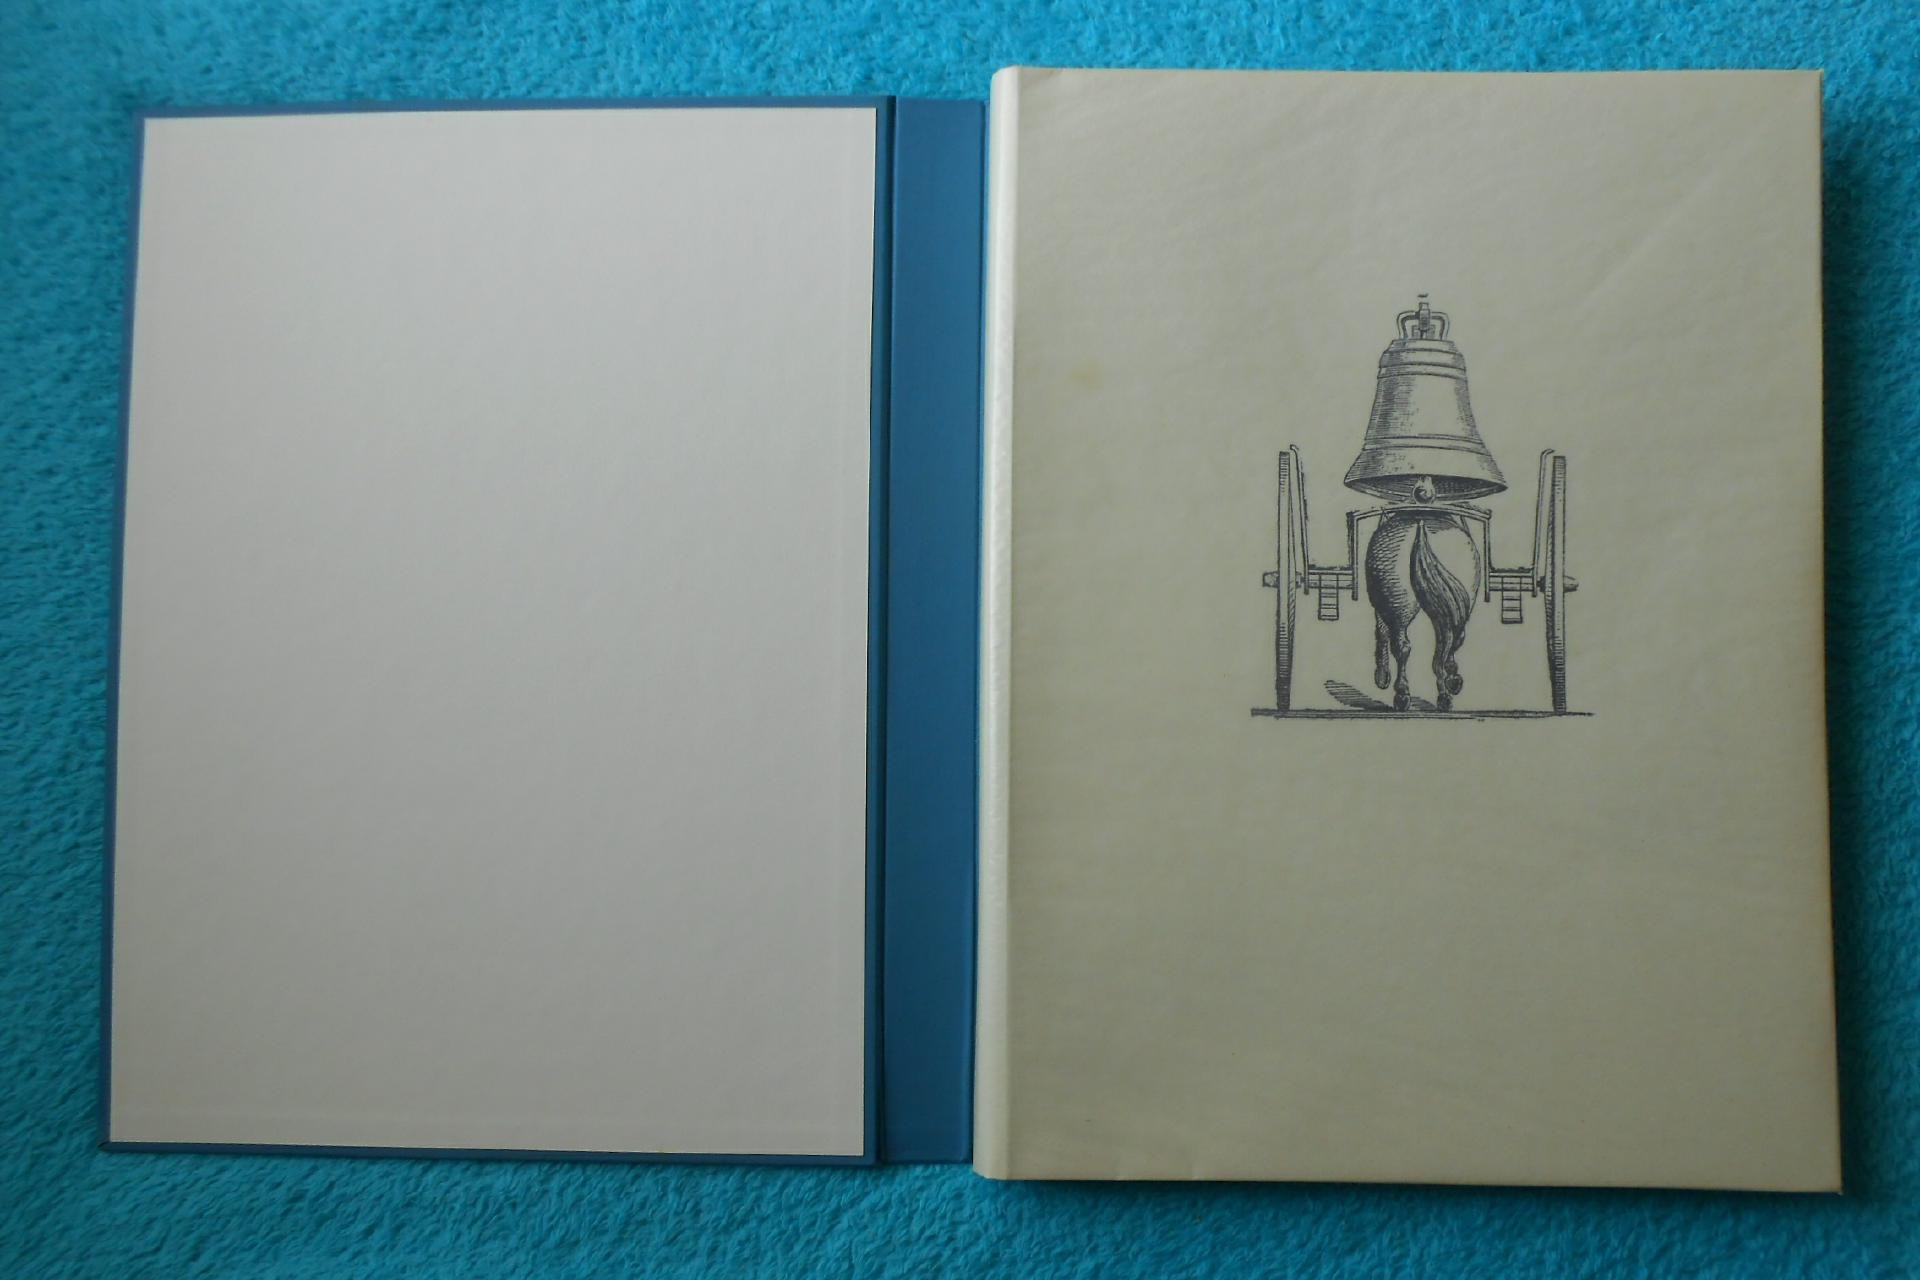 max ernst die ballade vom soldaten 1972 surrealismus dada ribemont dessaignes ebay. Black Bedroom Furniture Sets. Home Design Ideas